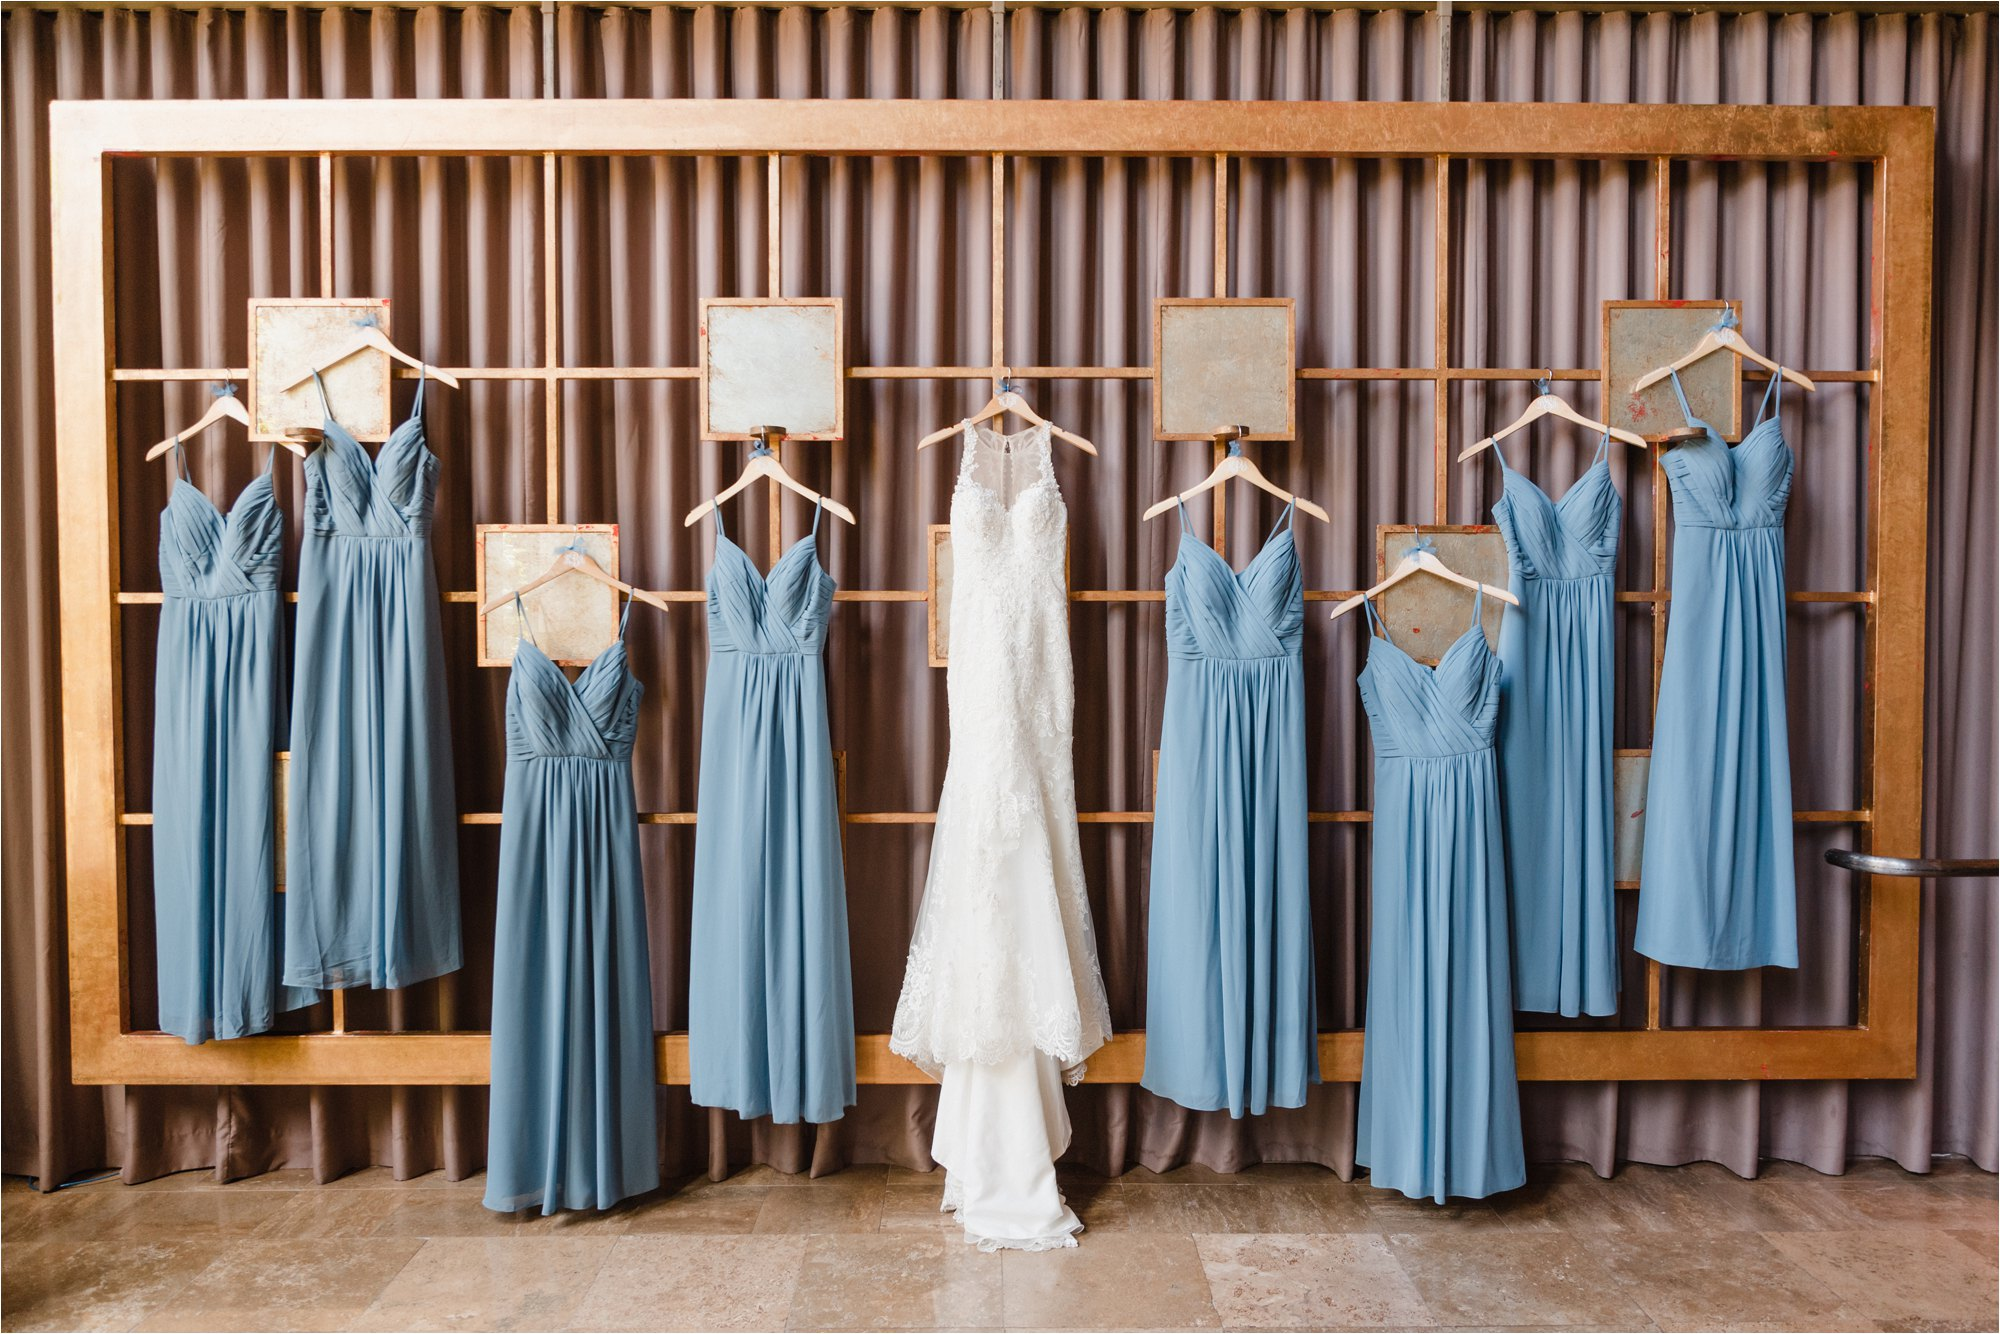 wedding dress hanging with blue bridesmaid dresses